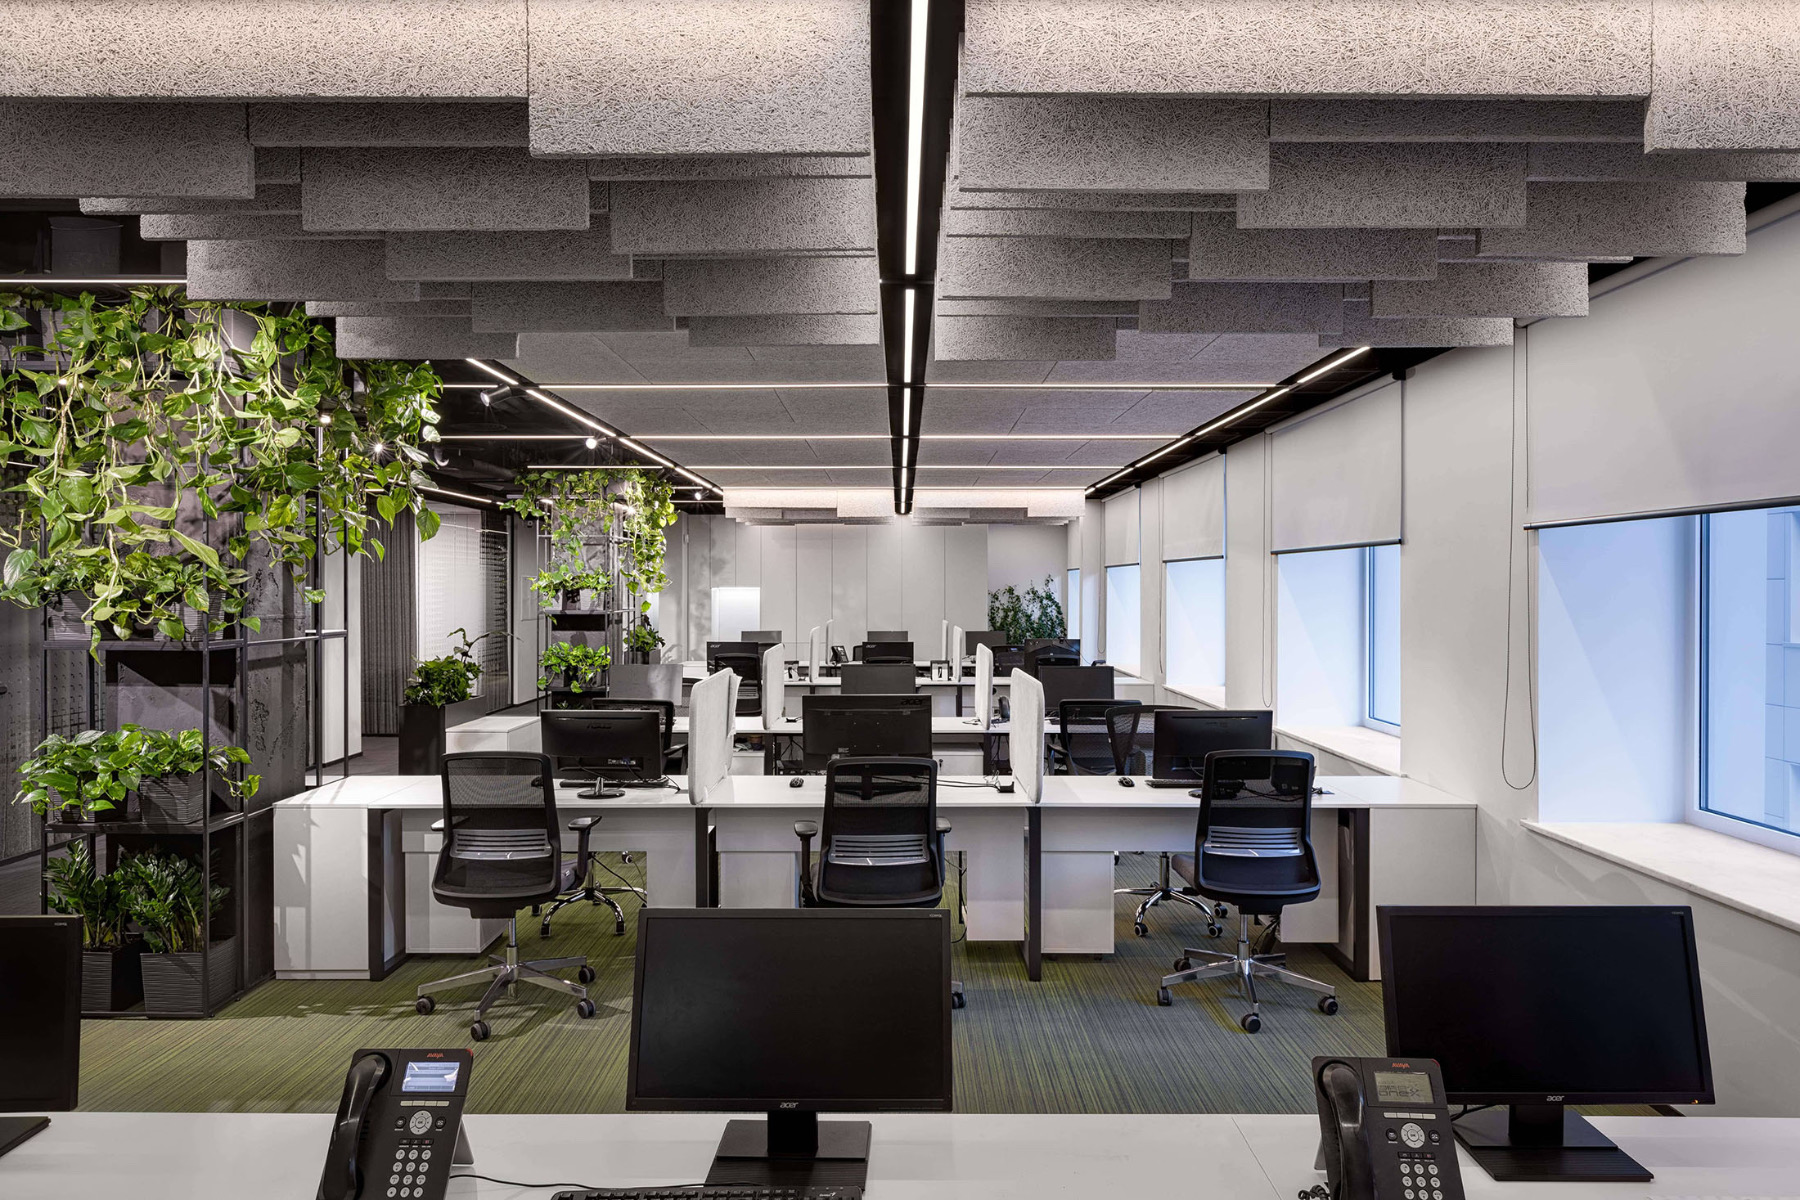 A Look Inside PrivatBank's New Kyiv Office